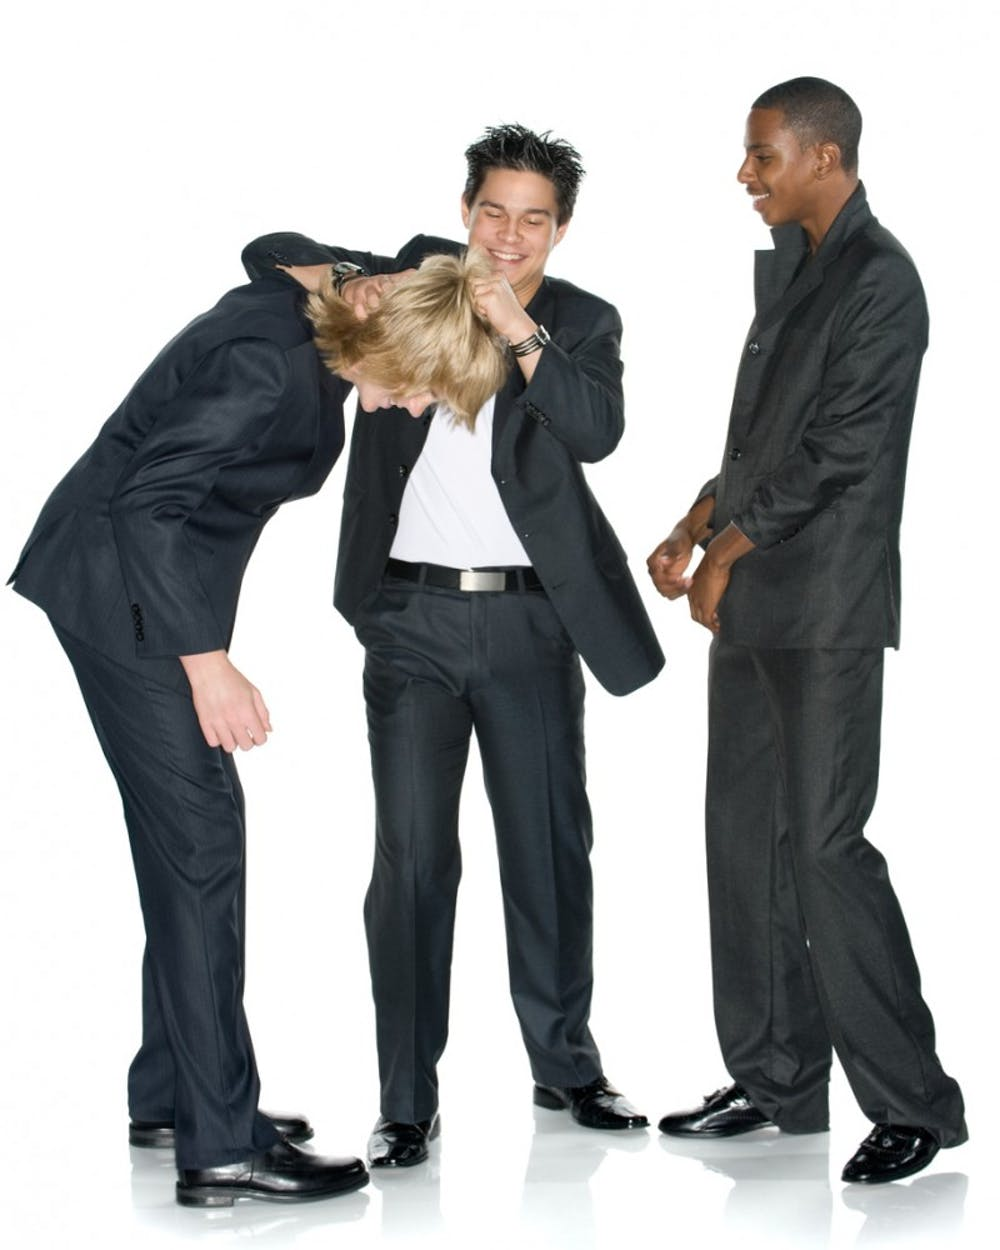 """Fun, light, and lively image of three young business men. Asian American man is giving a noogie to the new guy. Studio shot. Isolated on white."""